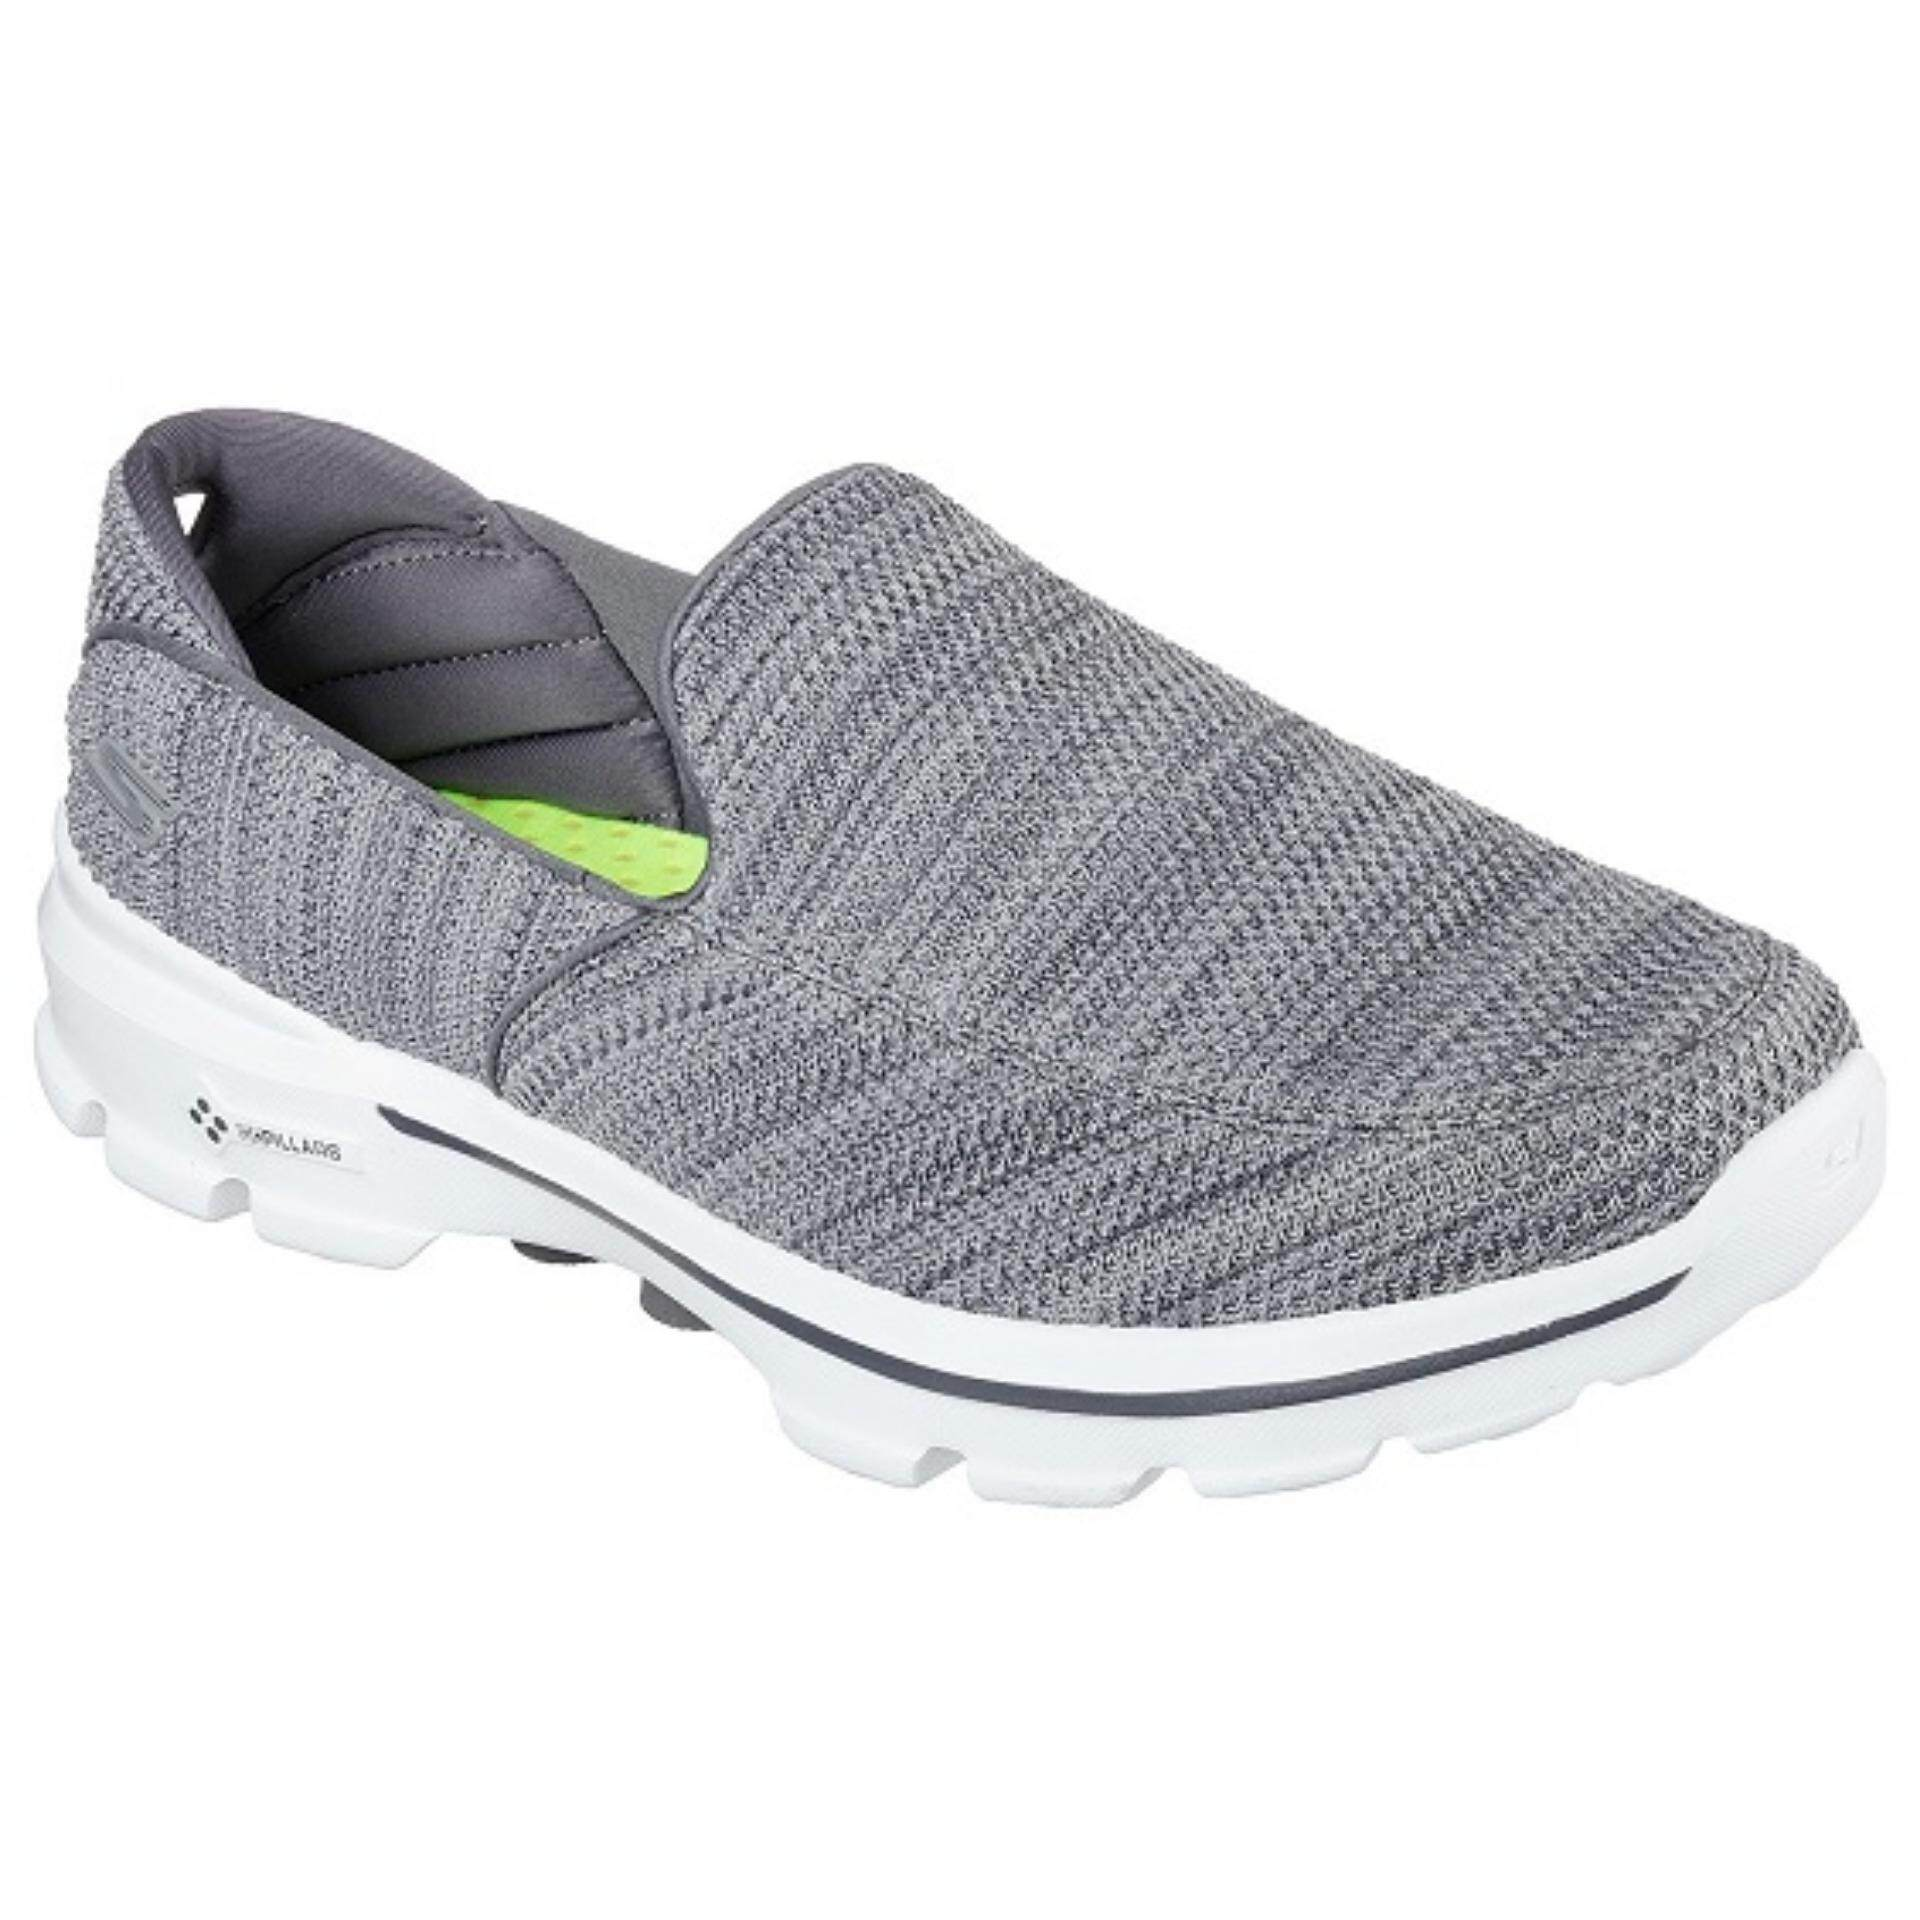 skechers shoes online malaysia